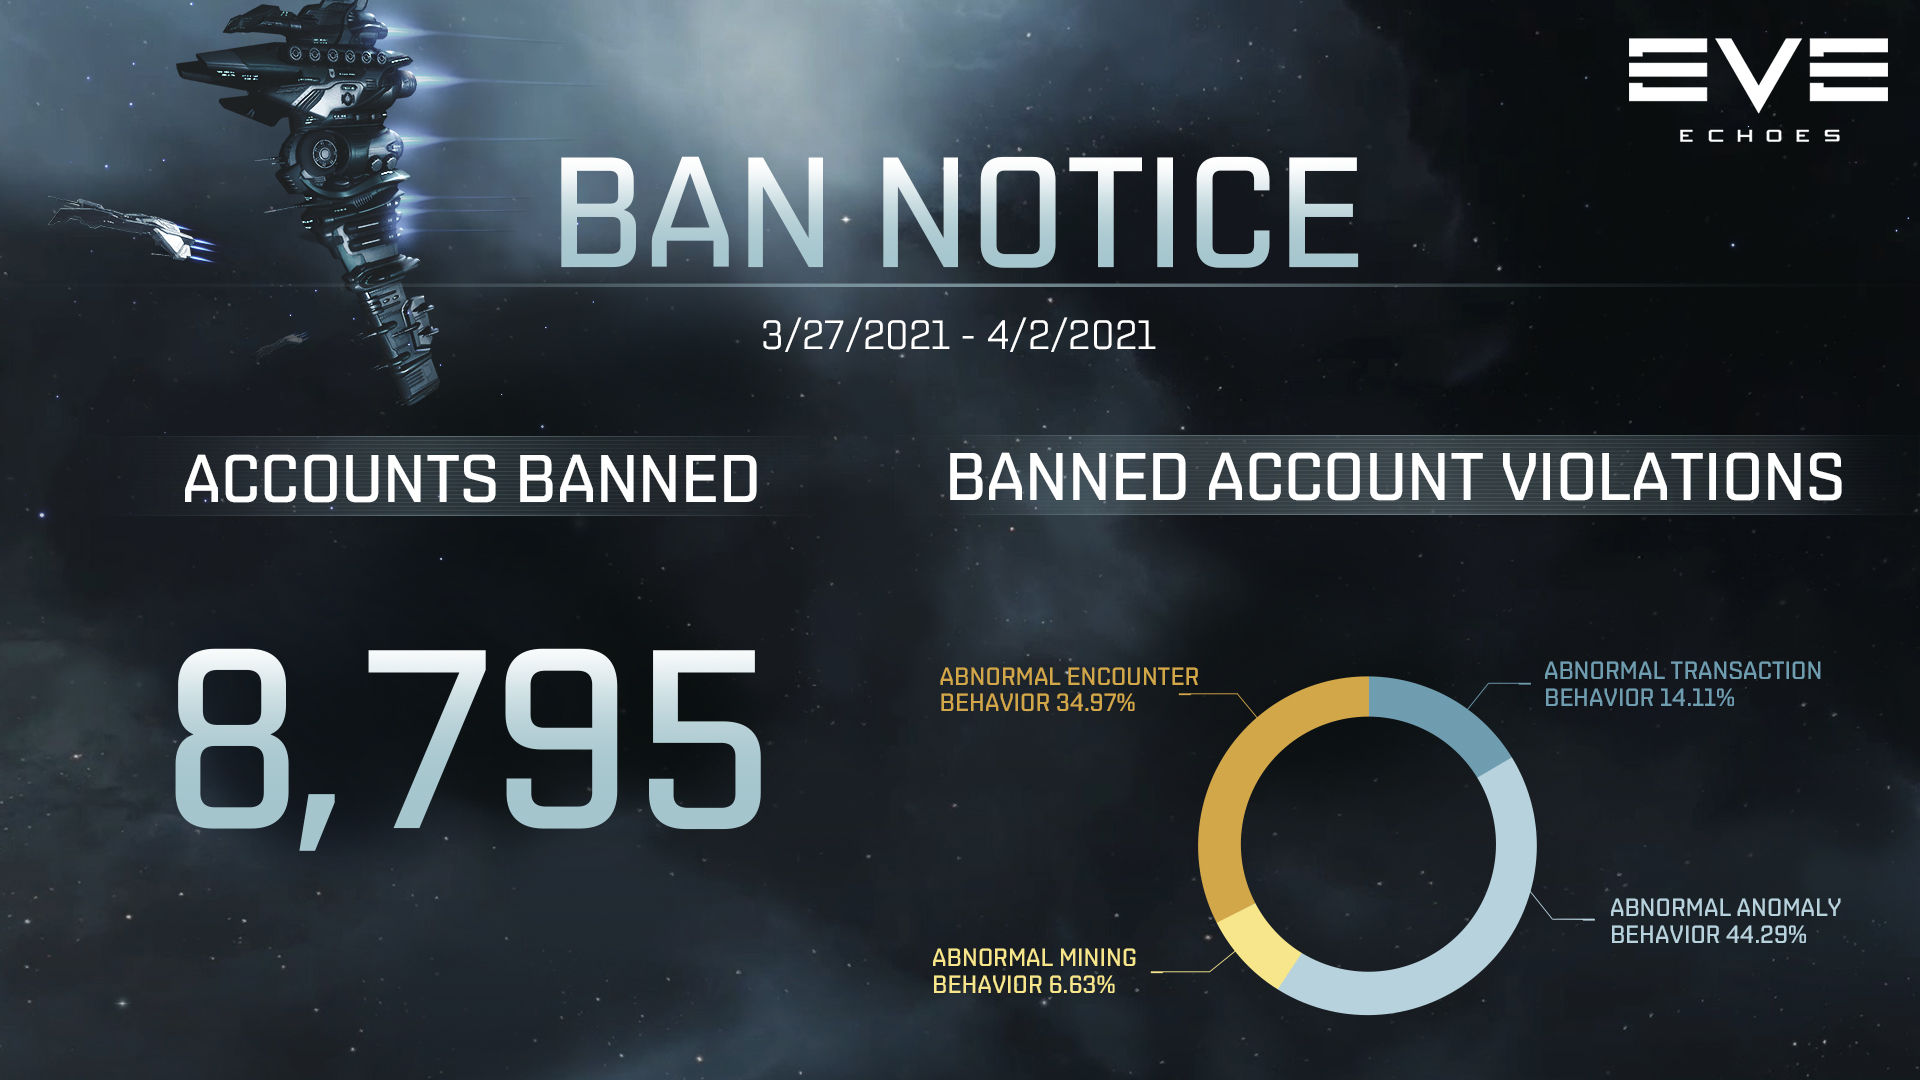 Ban Notice for 03/27-04/02